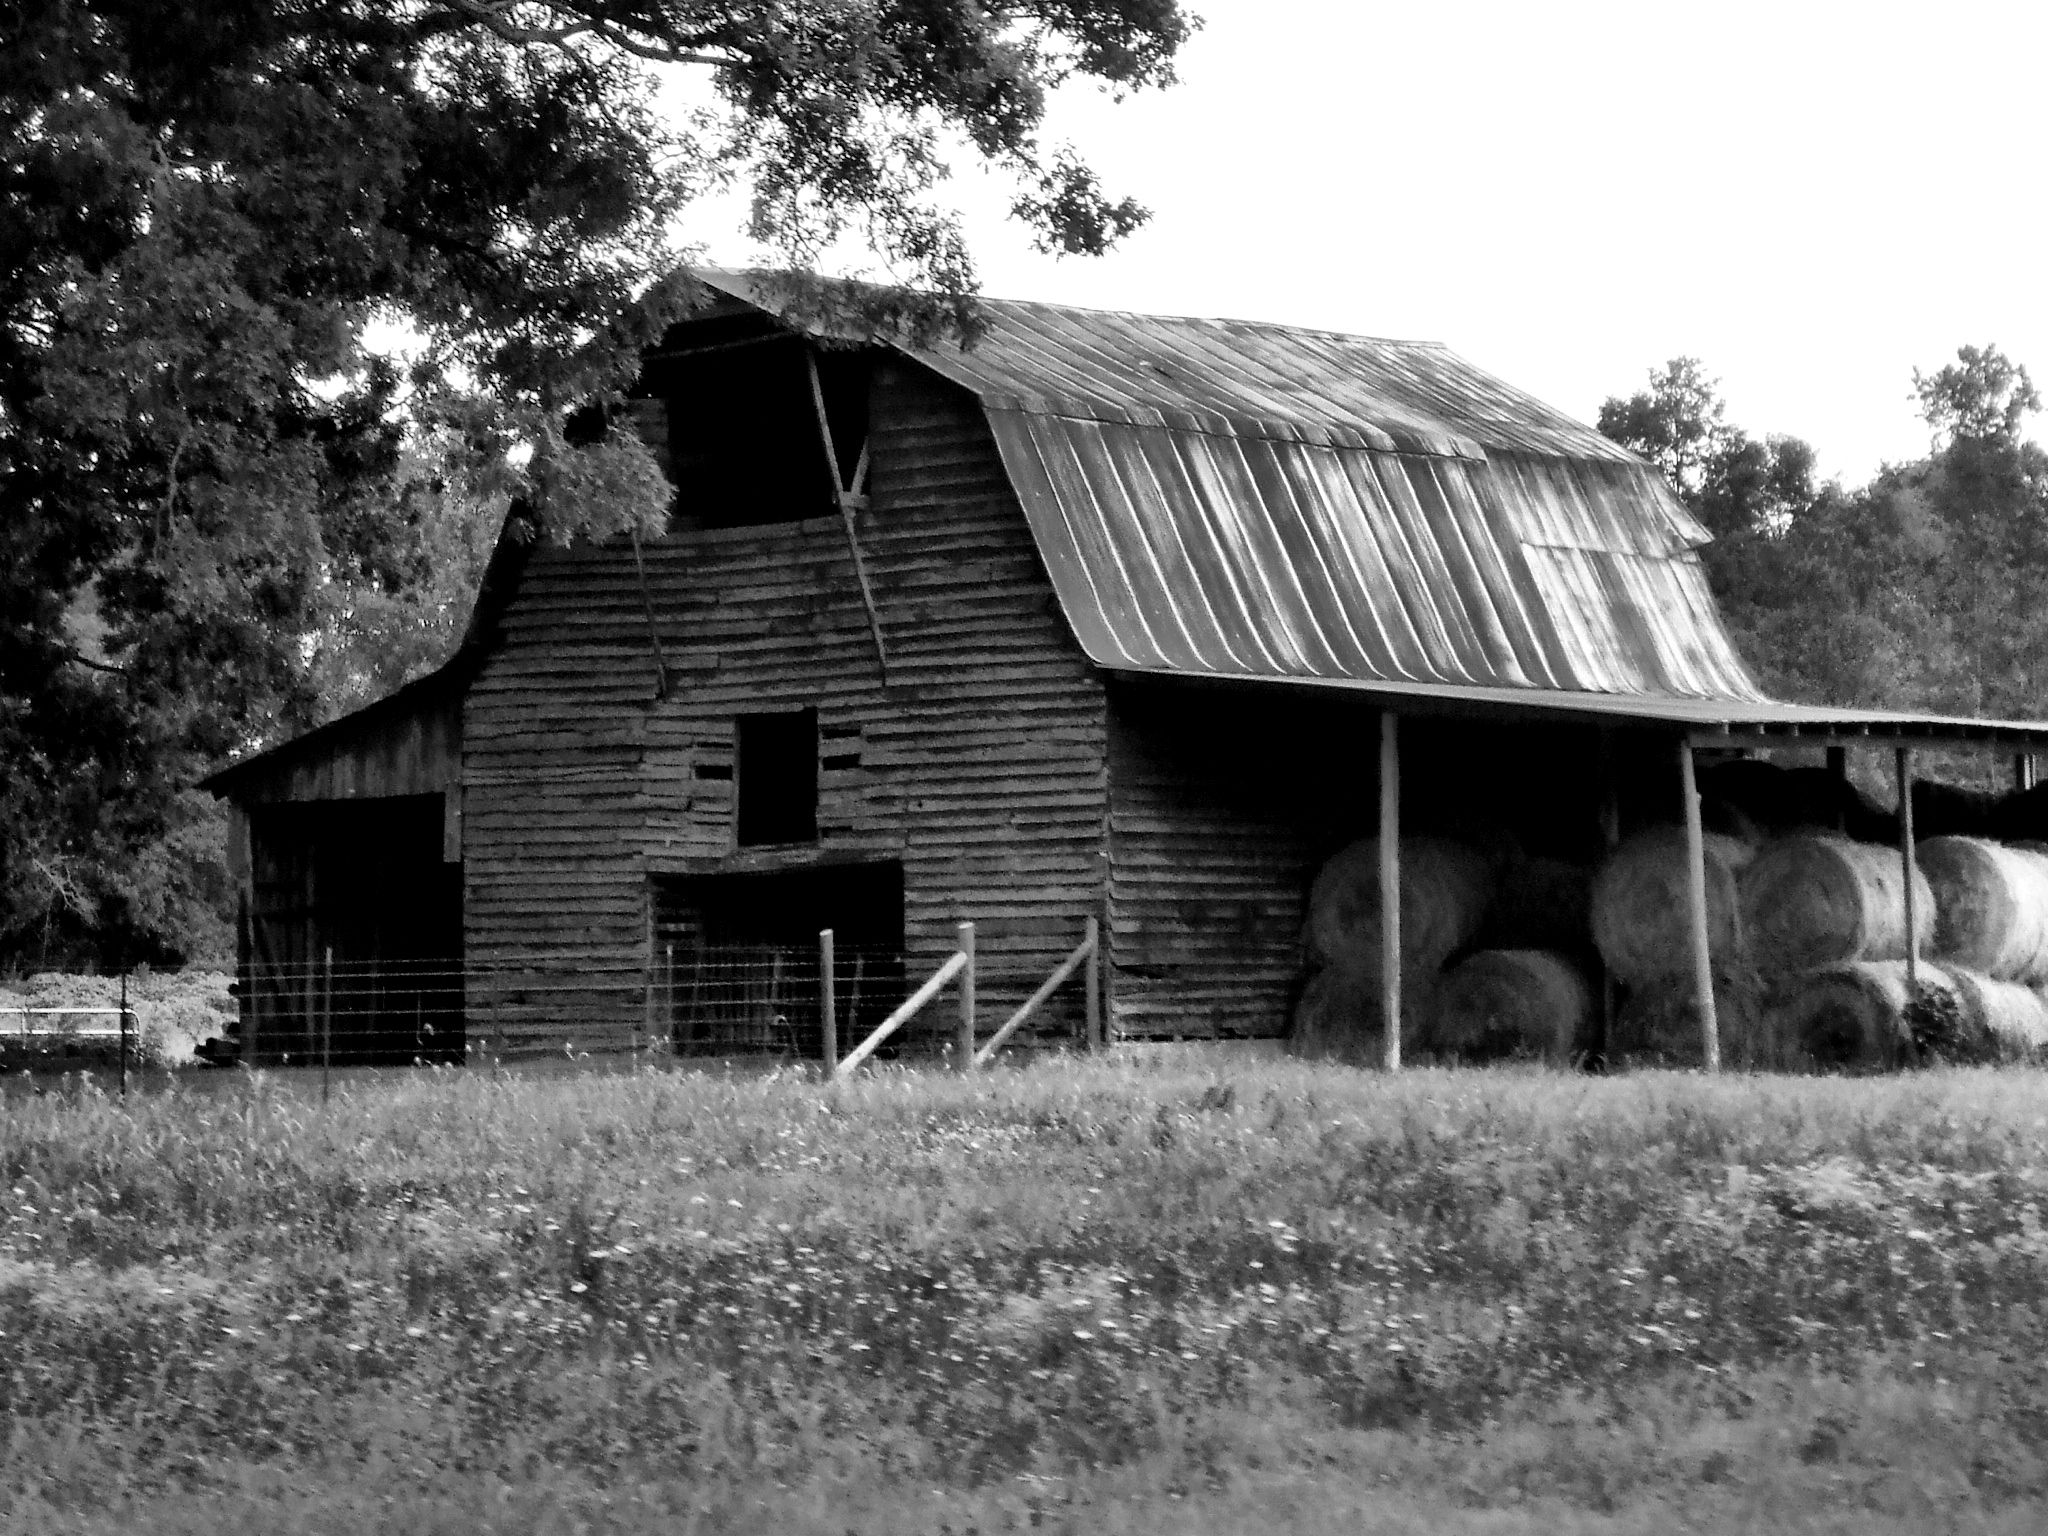 Tennessee. Old barn. | Rustic barn, Old barns, House styles